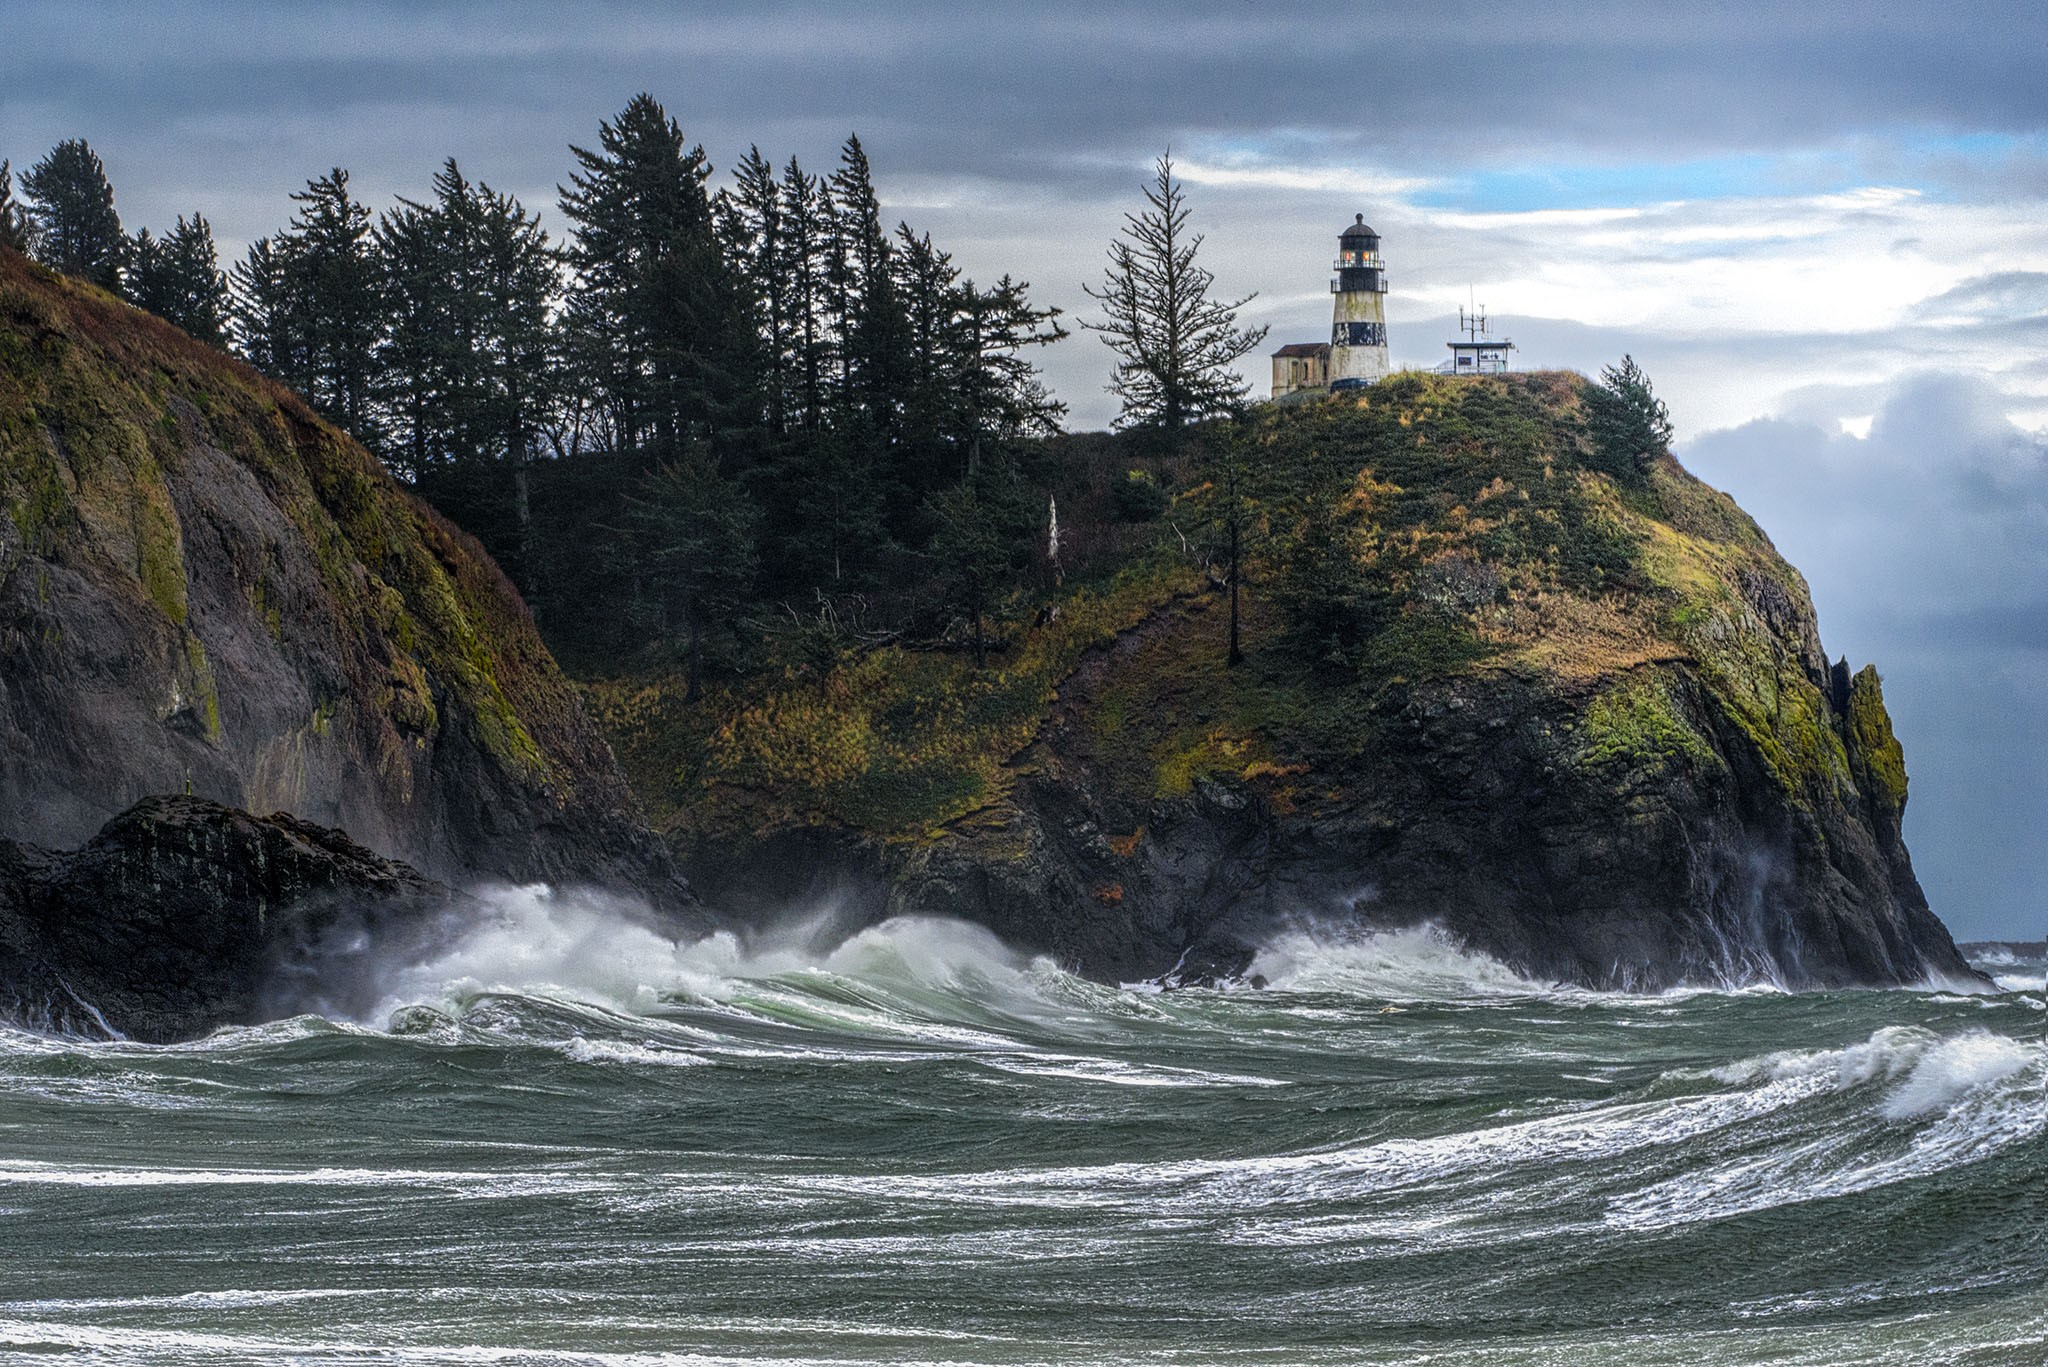 Cape Disappointment Photo Credit: David Larson